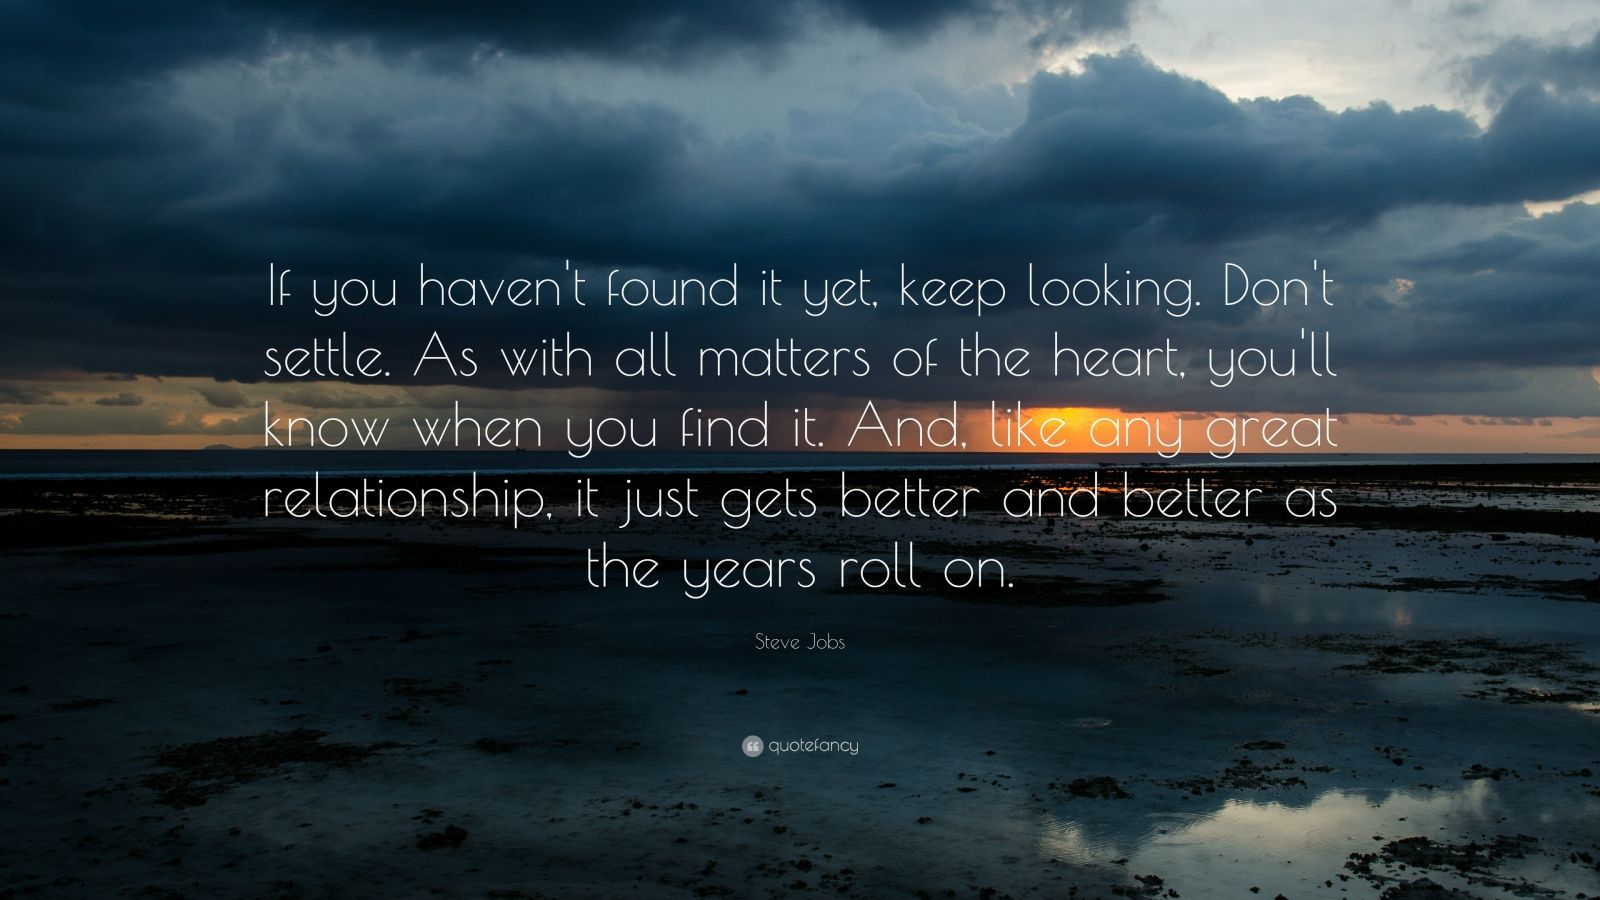 "Steve Jobs Quote: ""If you haven't found it yet, keep looking. Don't settle. As with all matters of the heart, you'll know when you find it. And, like any great relationship, it just gets better and better as the years roll on."""